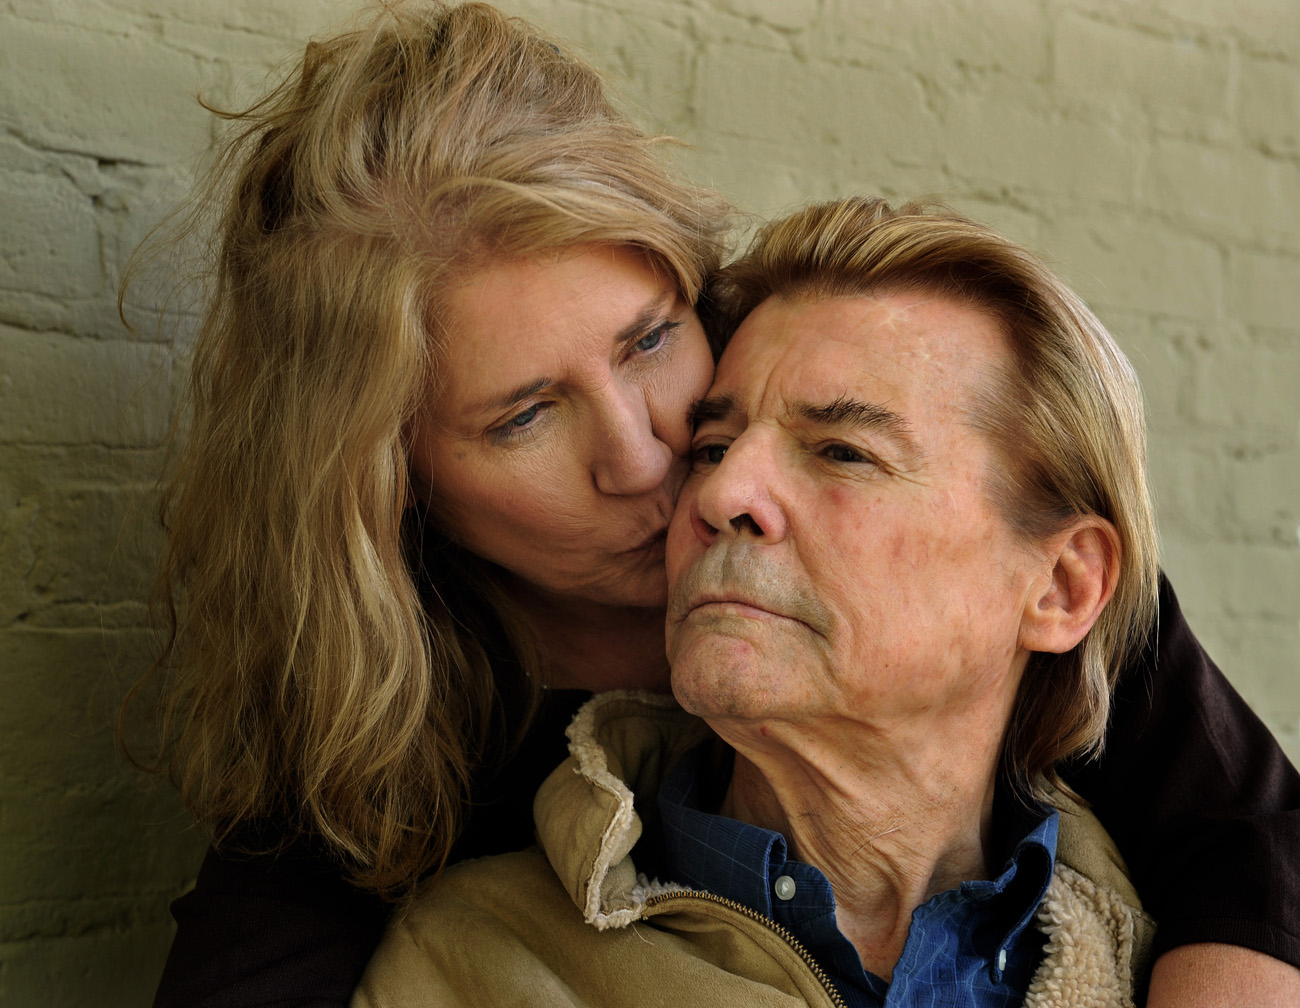 Retired actor Jan Michael Vincent, 65, left Hollywood 12 years ago for a reclusive life on the Mississippi delta. The actor's health is frail as he copes with the effects of decades of alcohol and drug addiction. He credits wife wife Anna for saving his life.   <b><i>On assignment for Splash News</i></b>